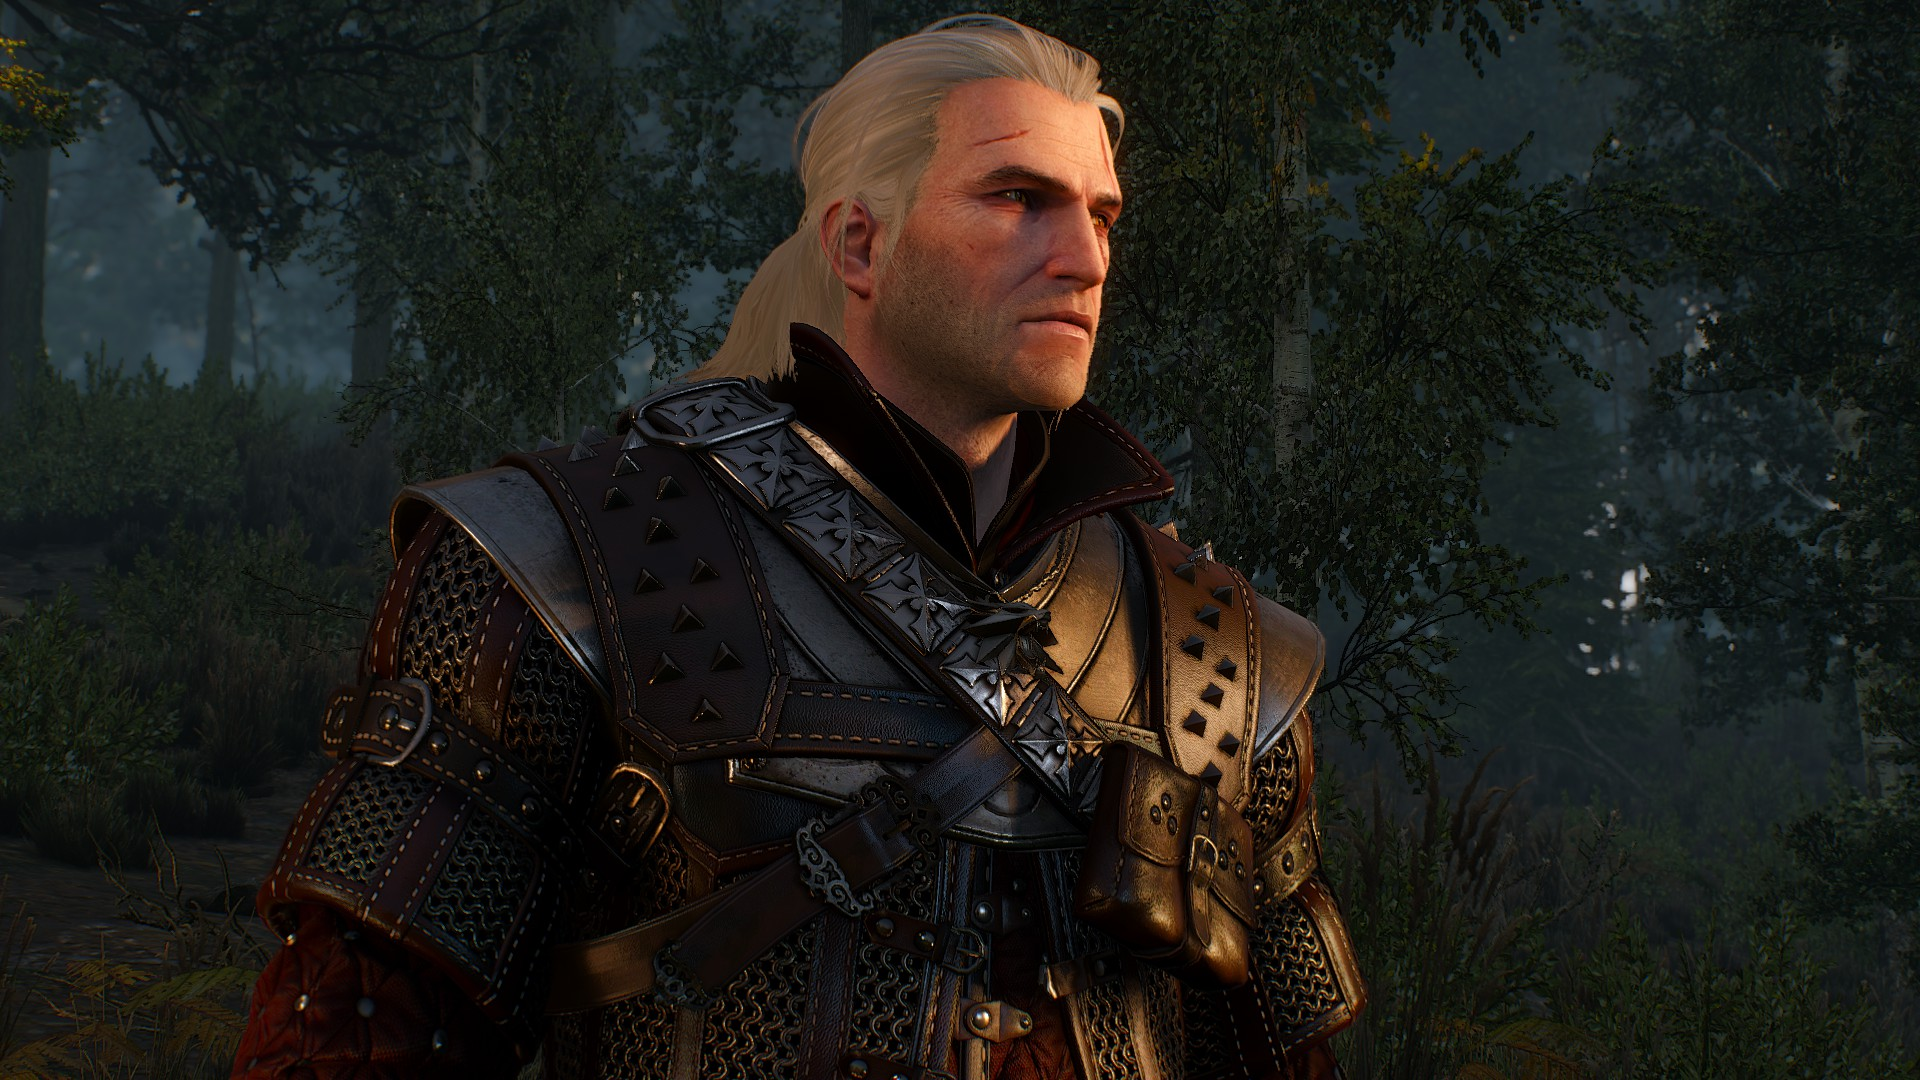 20180929102613_1.jpg - Witcher 3: Wild Hunt, the